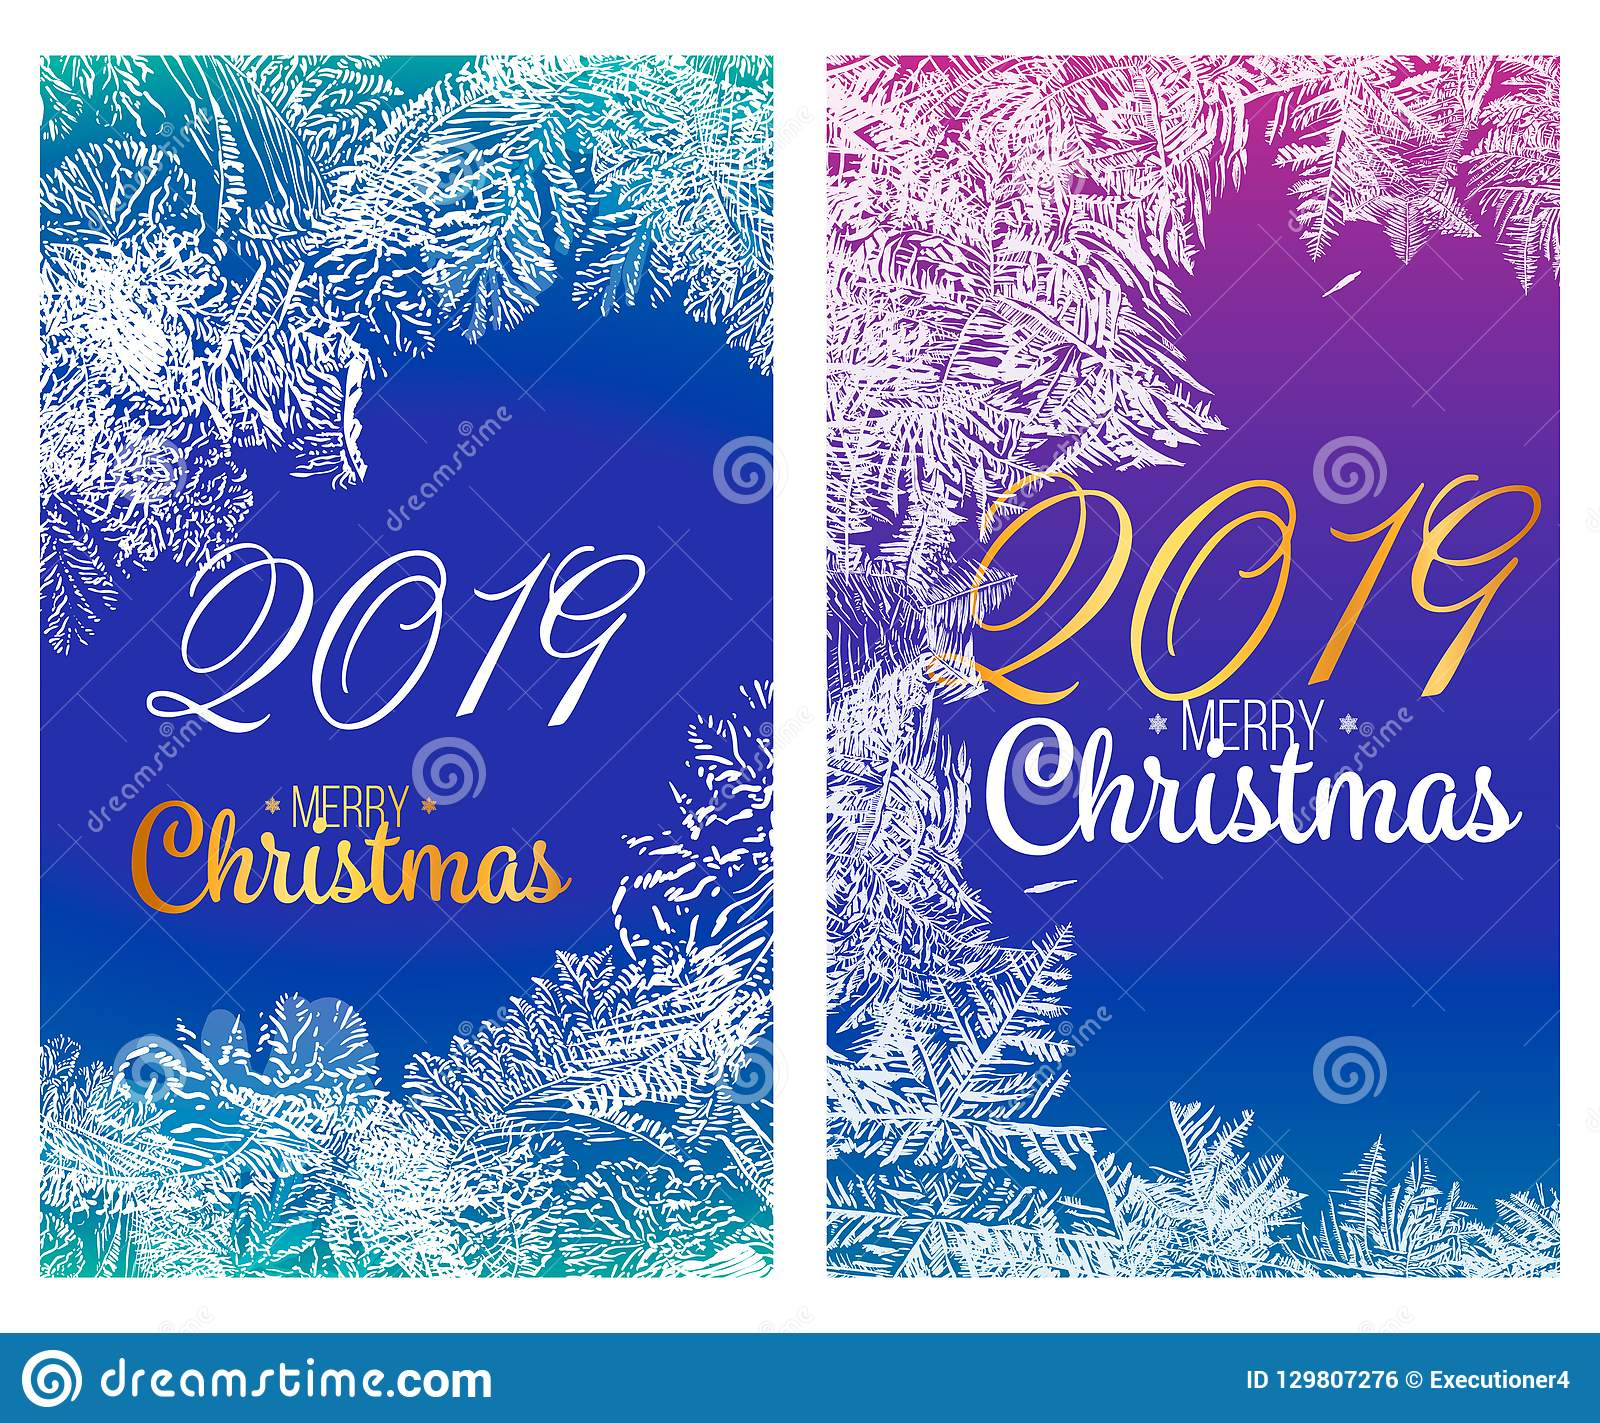 merry christmas glamour background with pine branch and greetings text happy